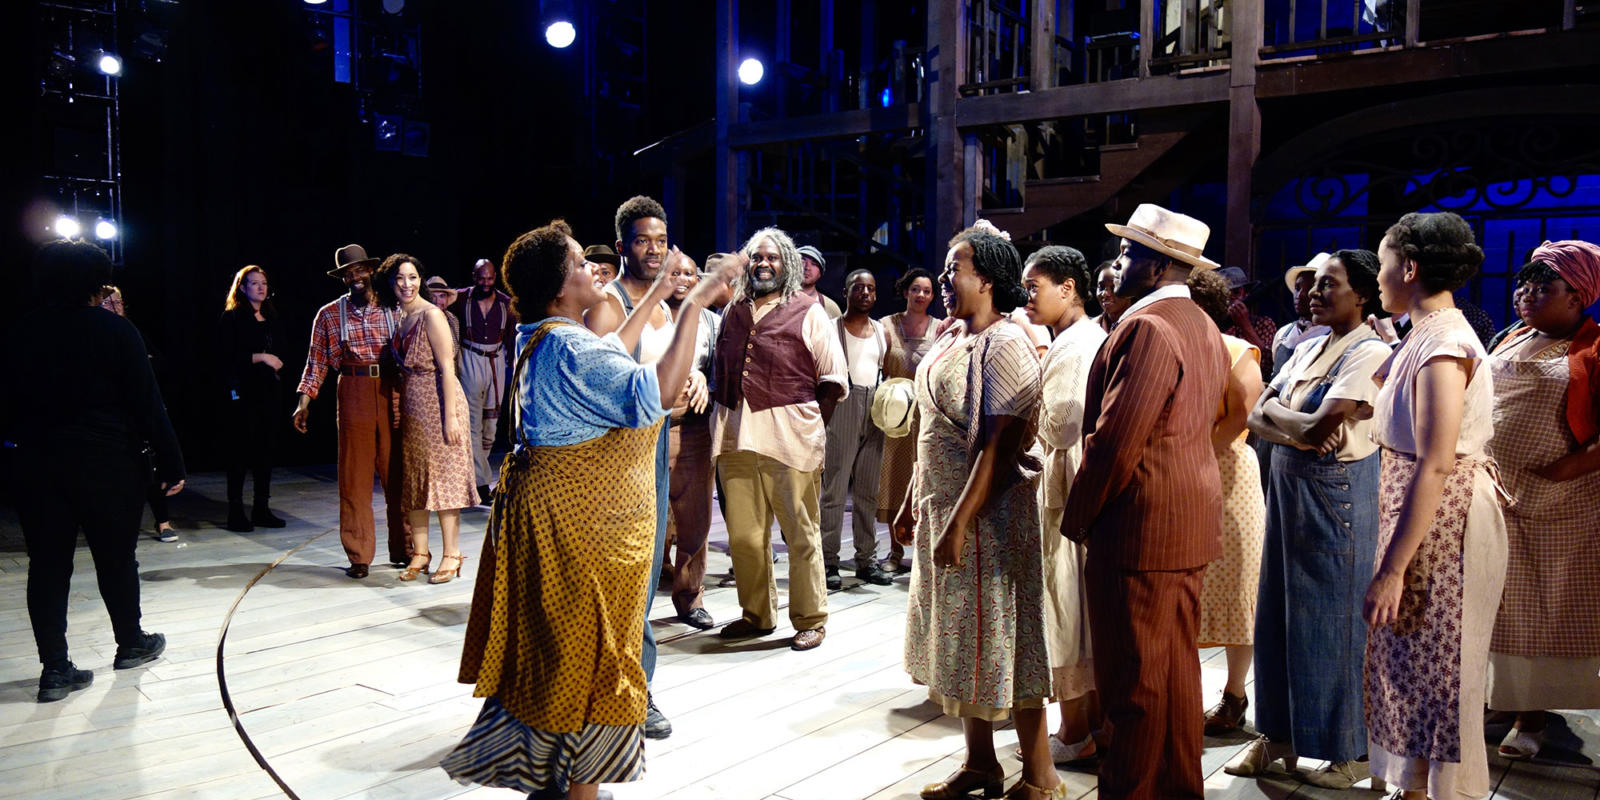 Tichina Vaughn directs cast and ensemble into getting ready for a whole group picture